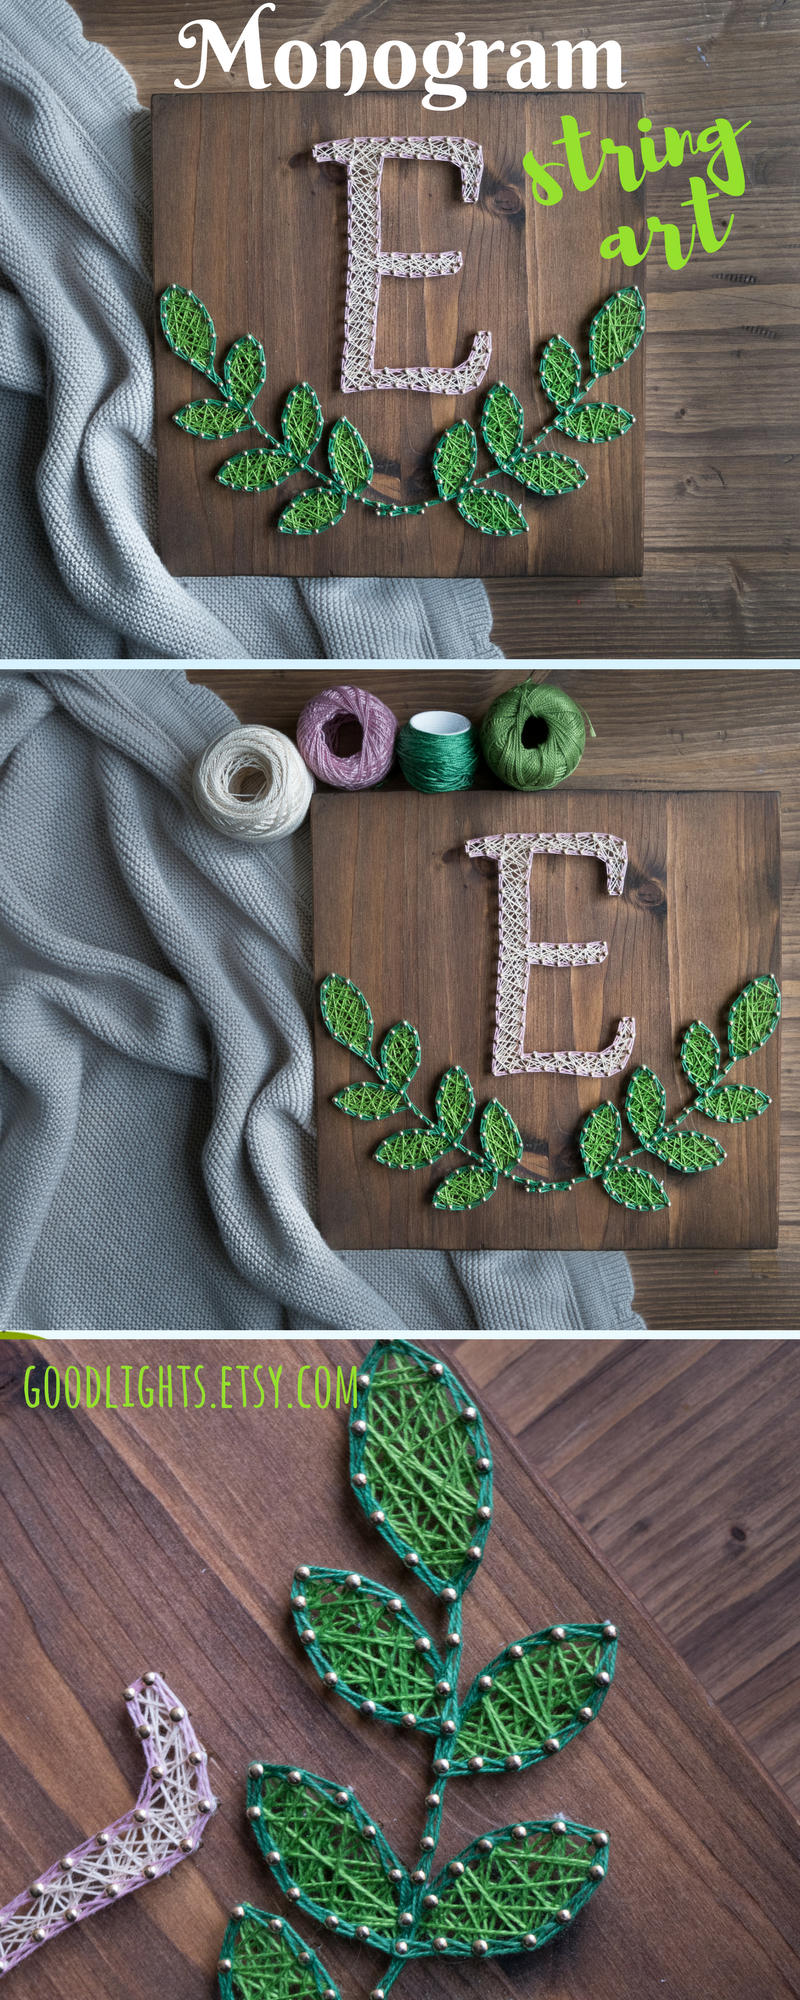 Monogram wall decor for modern and rustic interiors wood monogram monogram wall decor for modern and rustic interiors wood monogram string art gallery wall decor amipublicfo Image collections